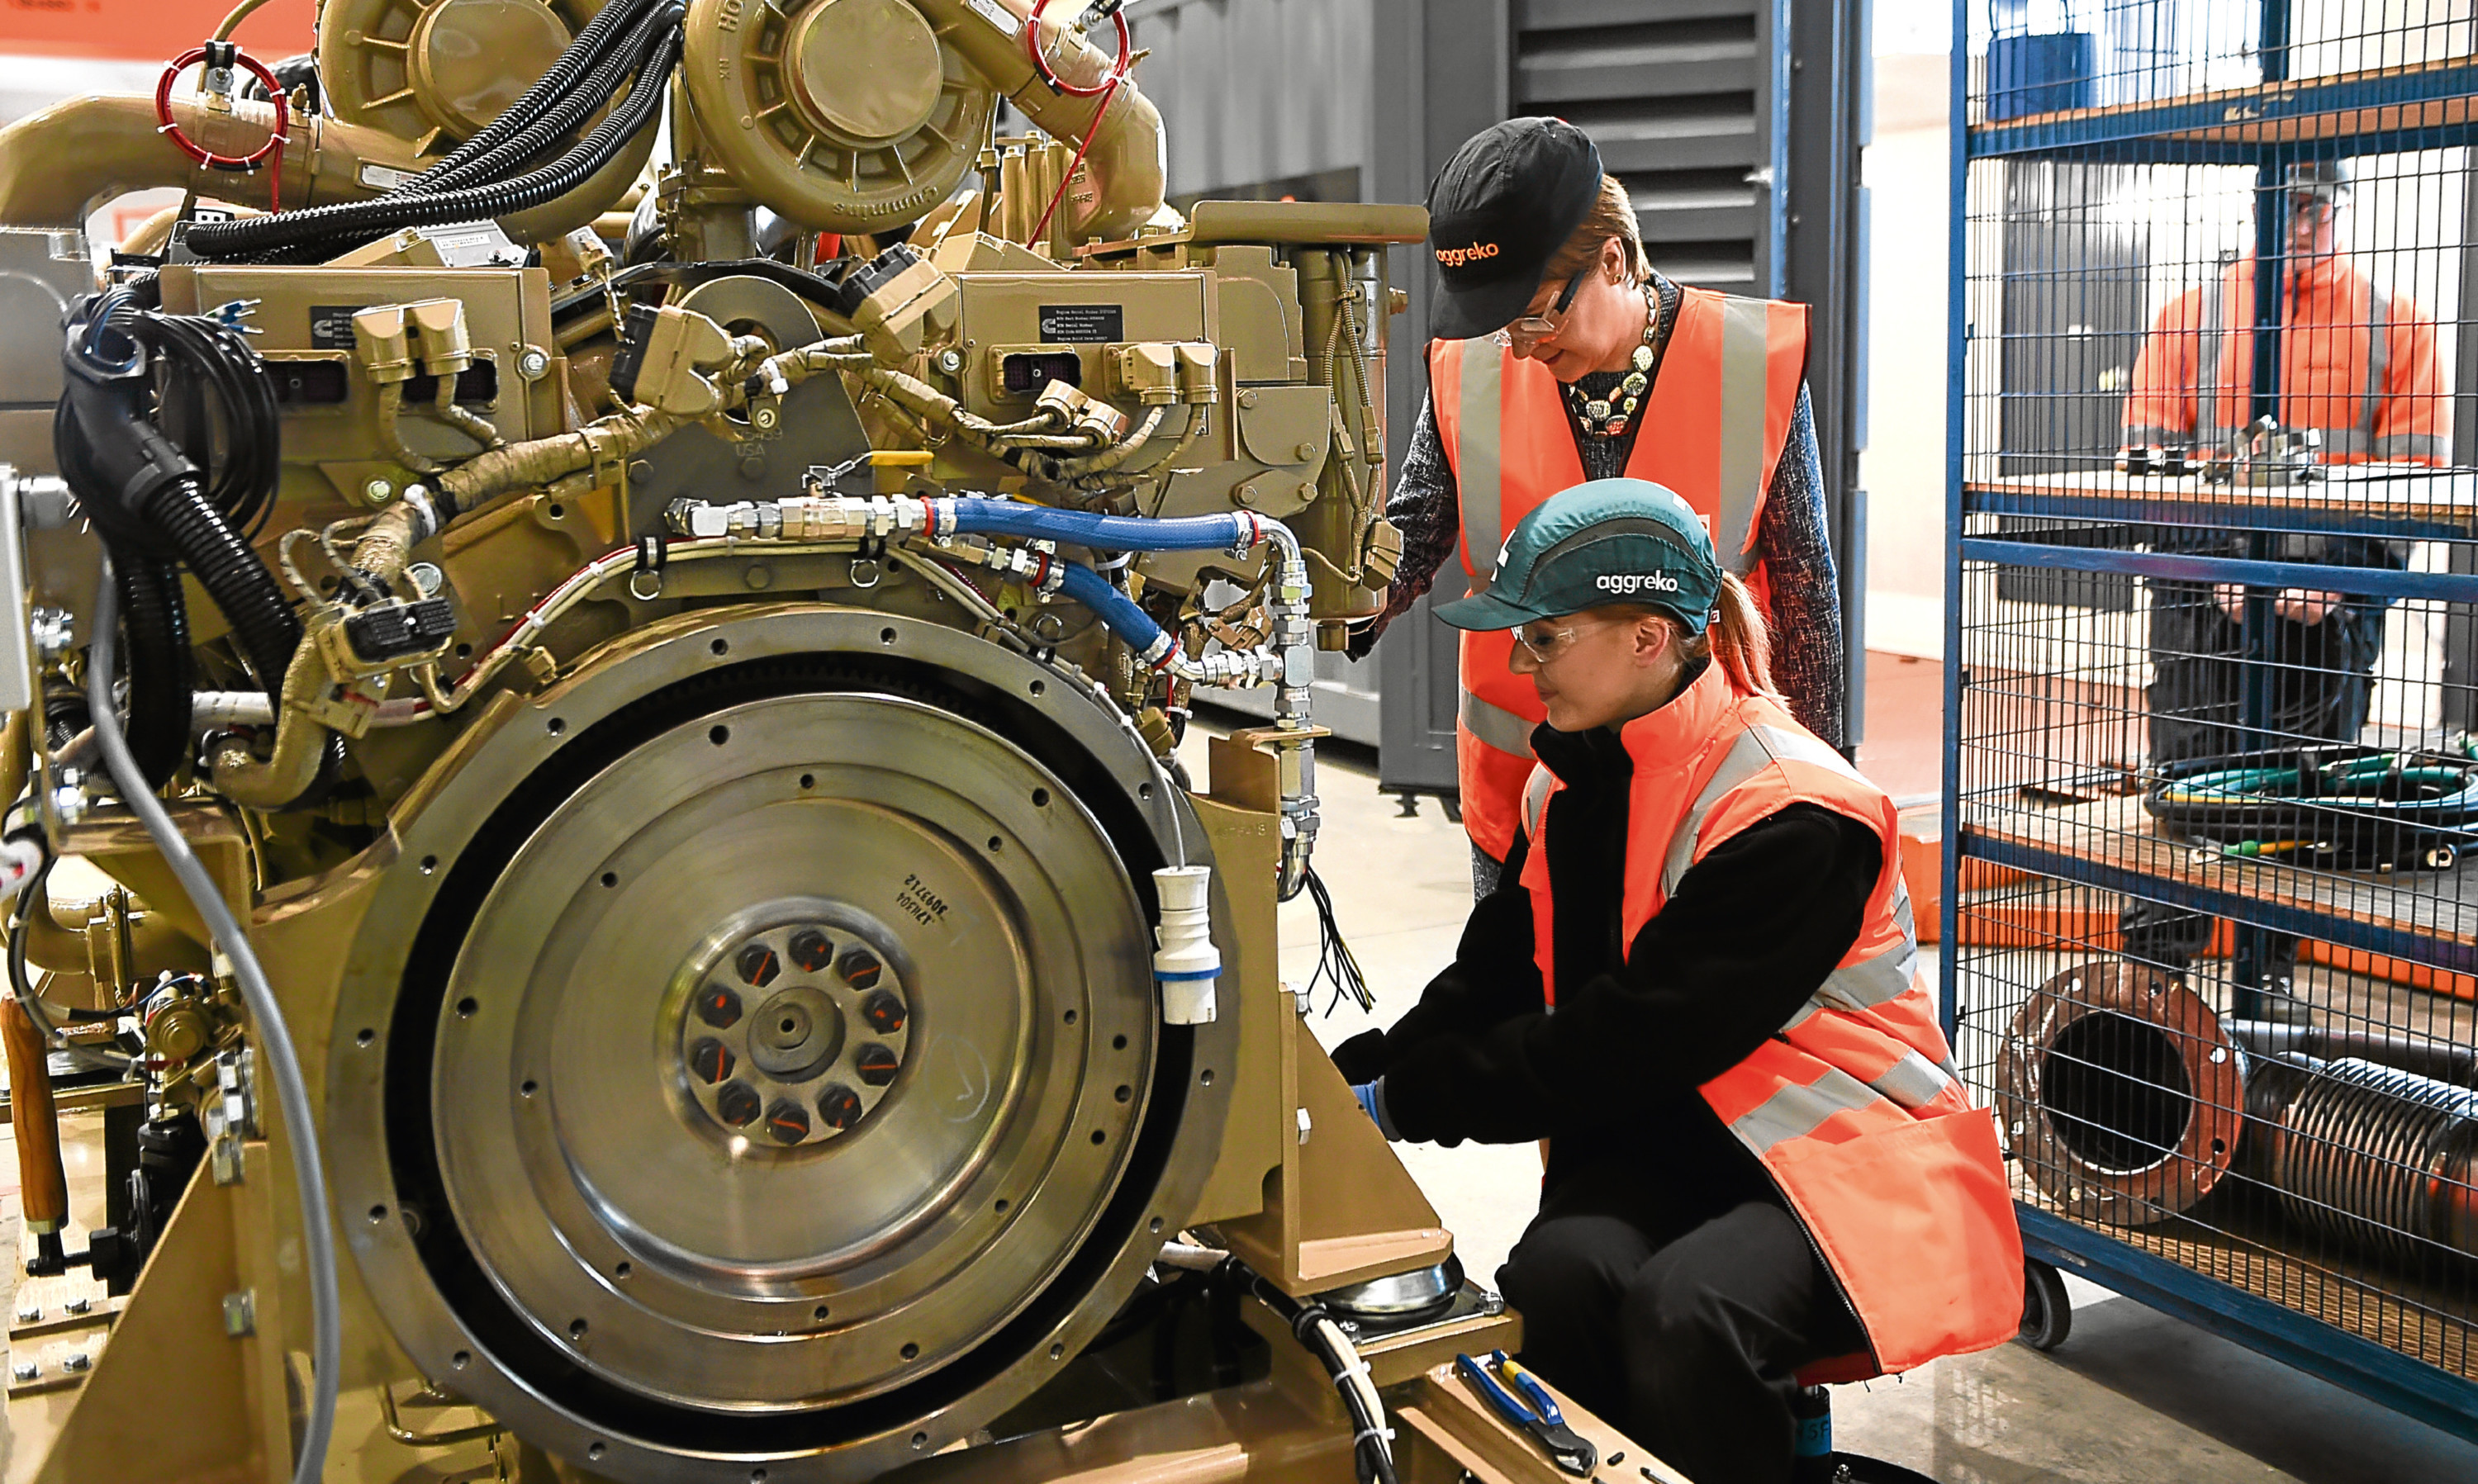 First Minister Nicola Sturgeon meets apprentice electrical engineer Stacey Blair during her visit to Aggrekos plant at Lomondgate